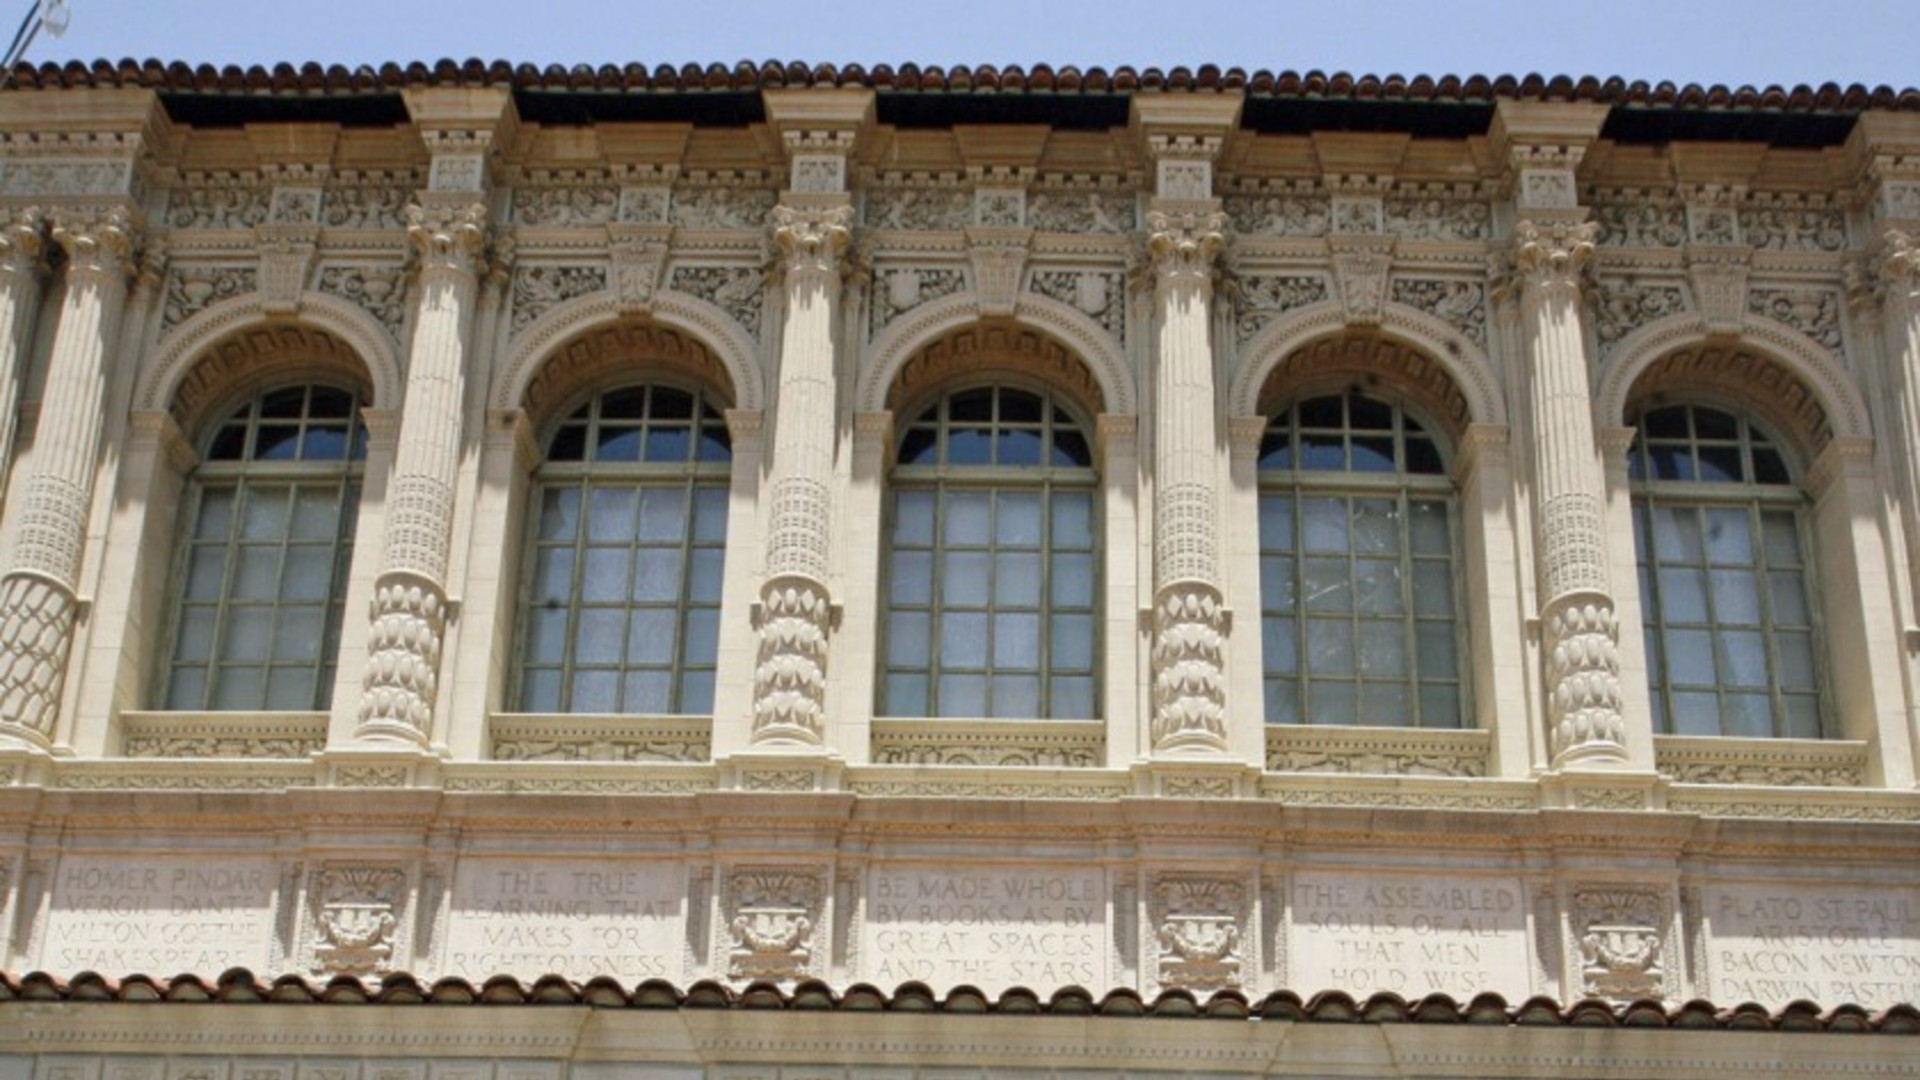 The front entrance of the Pasadena Central Library is seen in an undated photo. (Roger Wilson / Times Community News via L.A. Times)